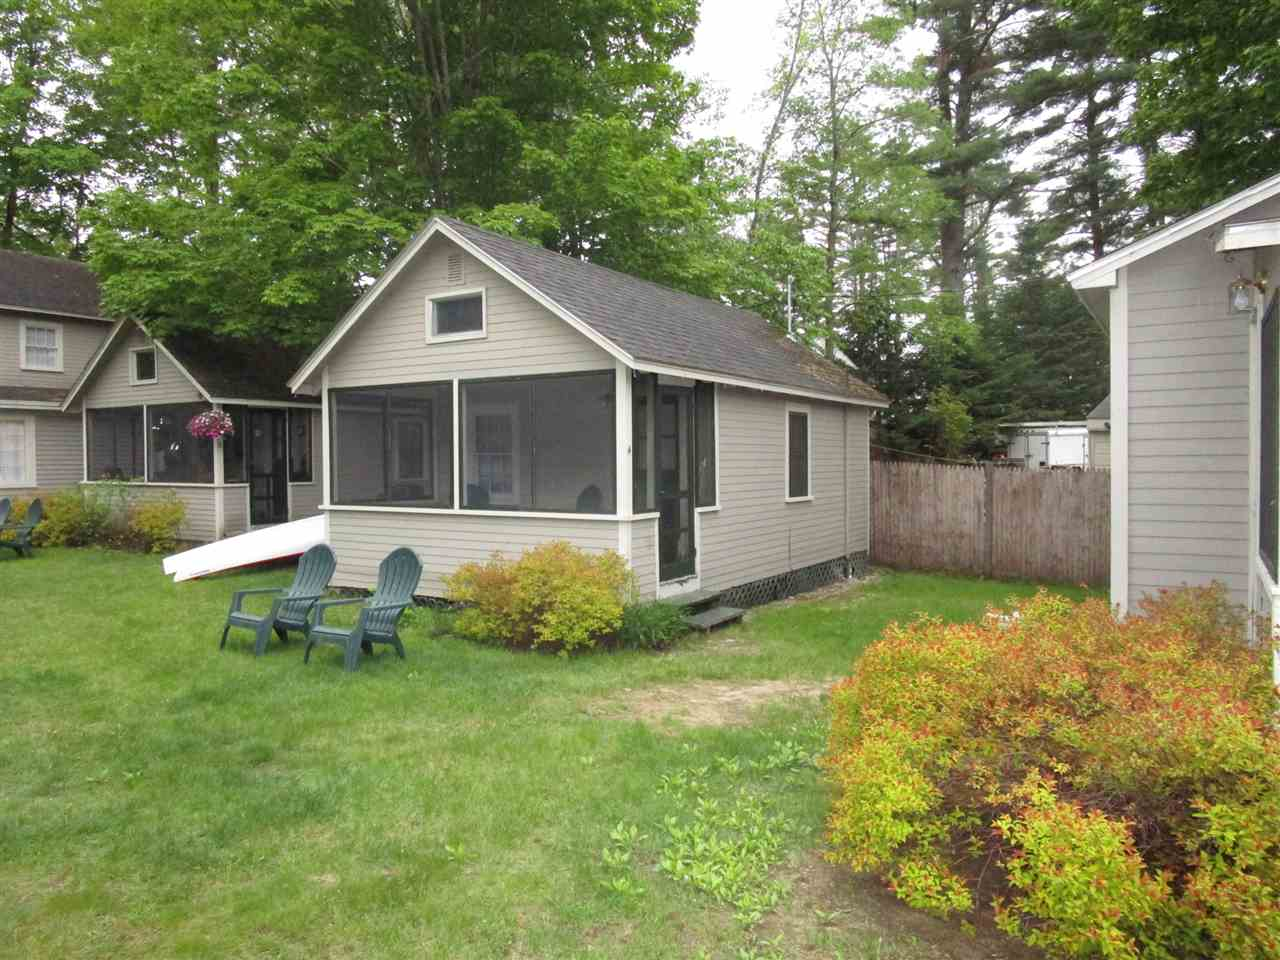 MLS 4351139: 1291 Mayhew Turnpike, Bridgewater NH